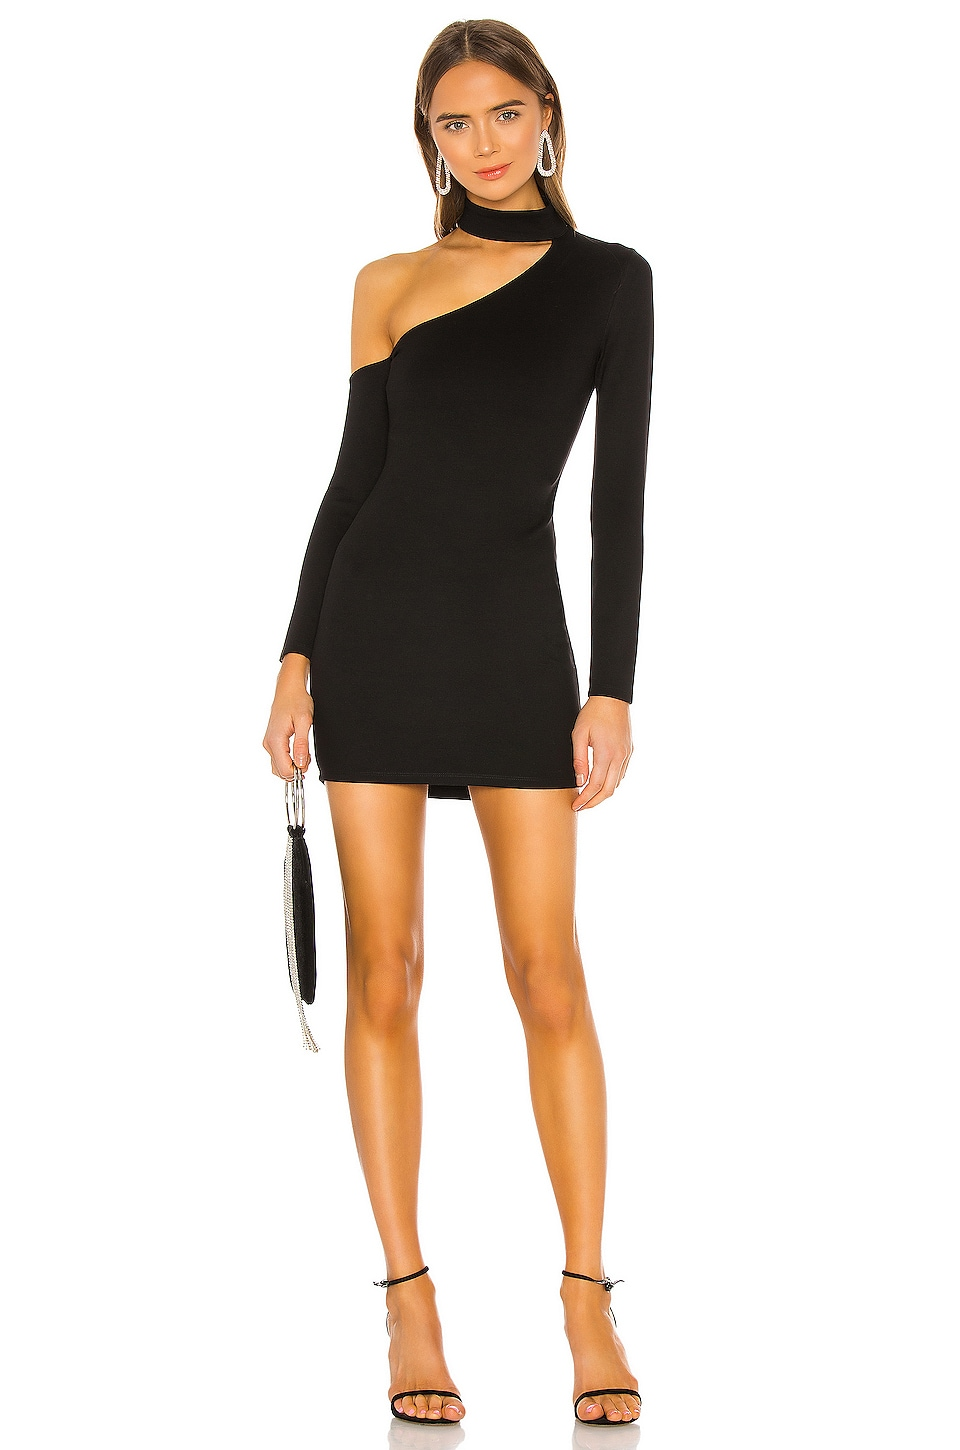 Lovers + Friends Bono Mini Dress in Black